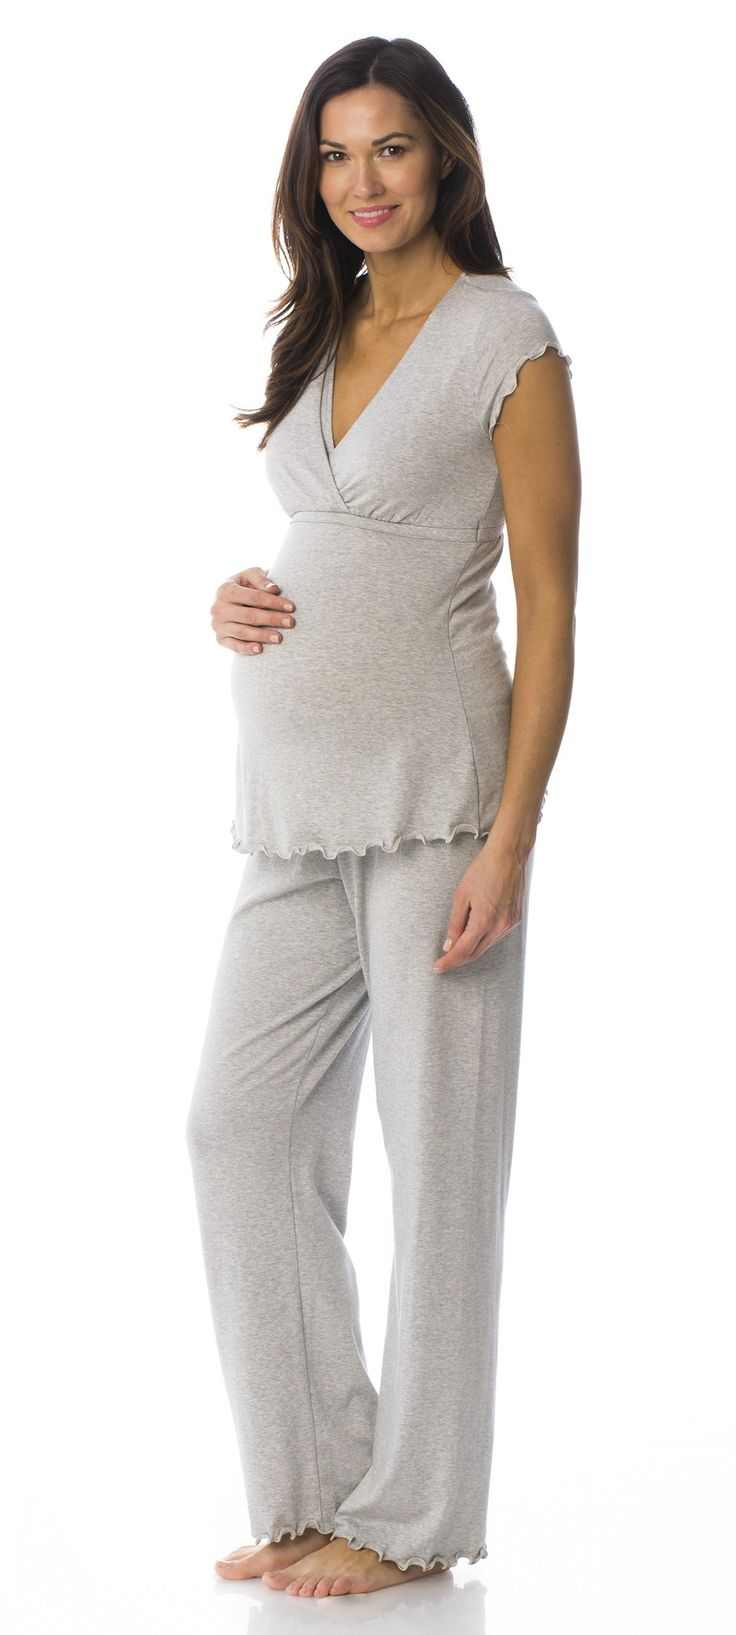 versatile eco friendly bumpstyle // MAJAMAS // comfy cozy PJs, sleepwear & pajamas // cotton modal grey maternity top with nursing access for mama & long pant // be the change & learn to love ecofashion // wear beautiful clothing that doesn't harm our beautiful planet